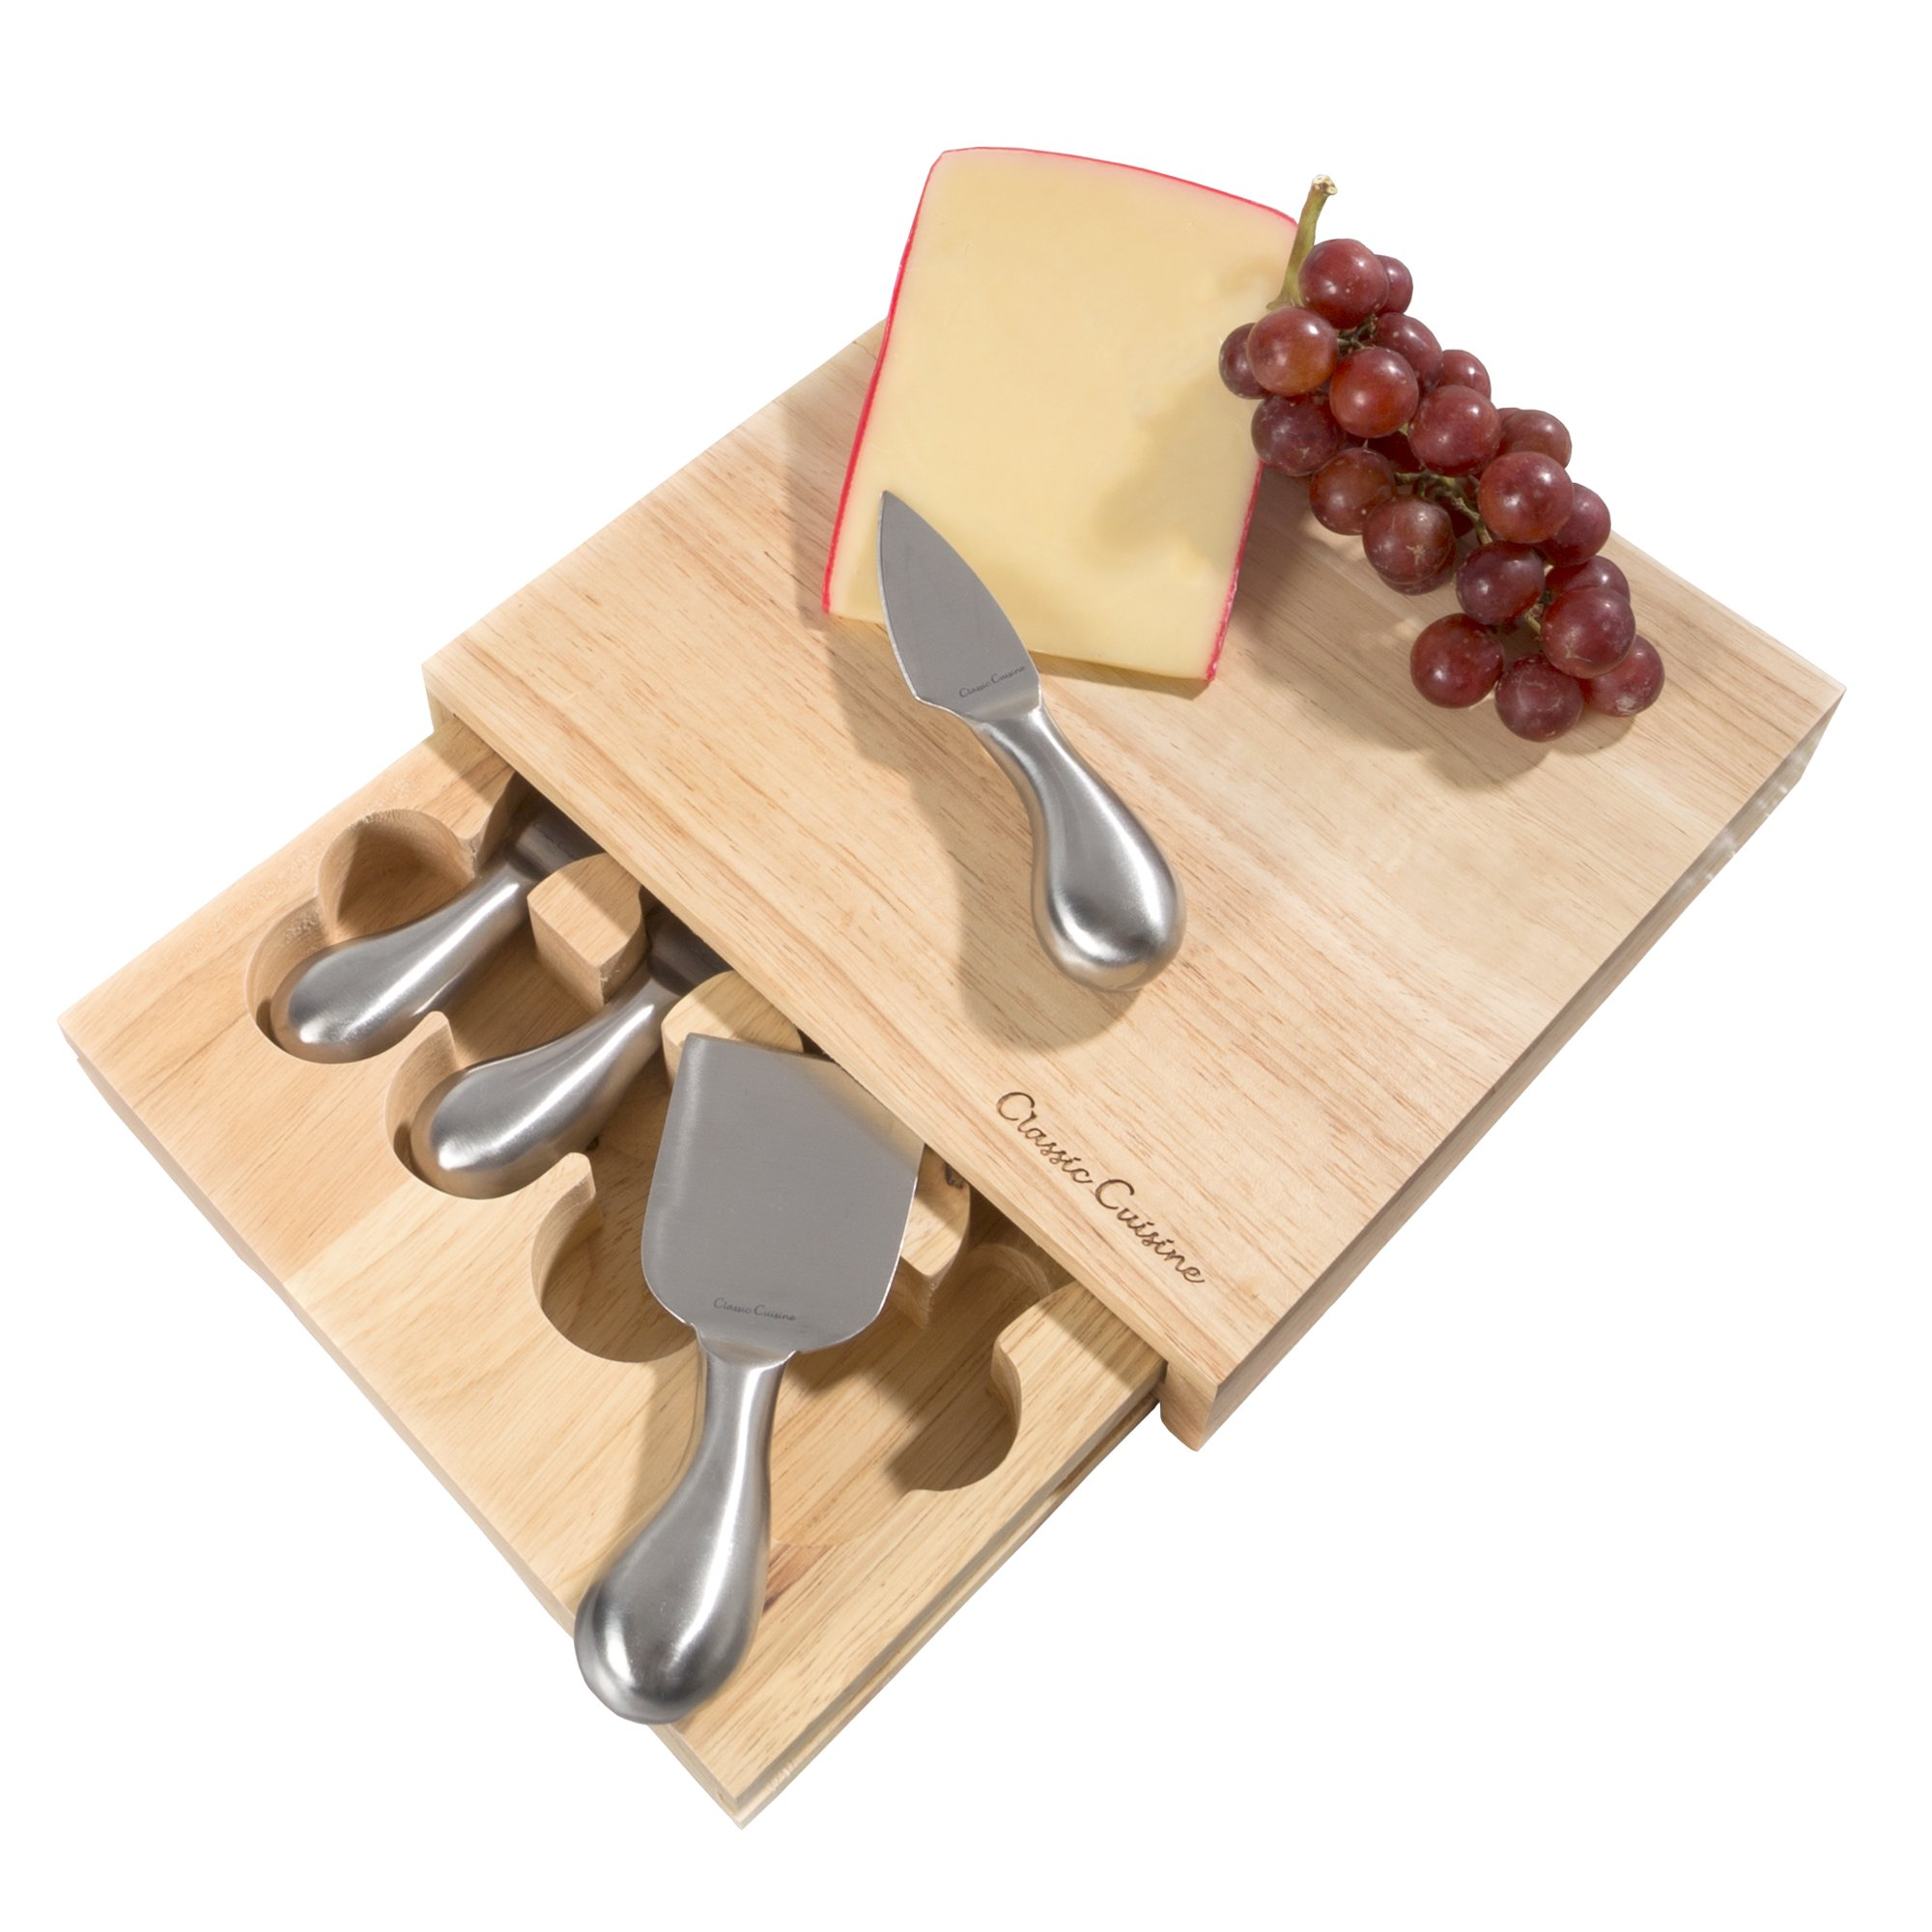 Cheese Board 5 piece Set with Stainless Steel Tools and Wood Cutting Block for Every day, Entertaining, Picnics, Gifts 8.6 x 8.25 by Classic Cuisine